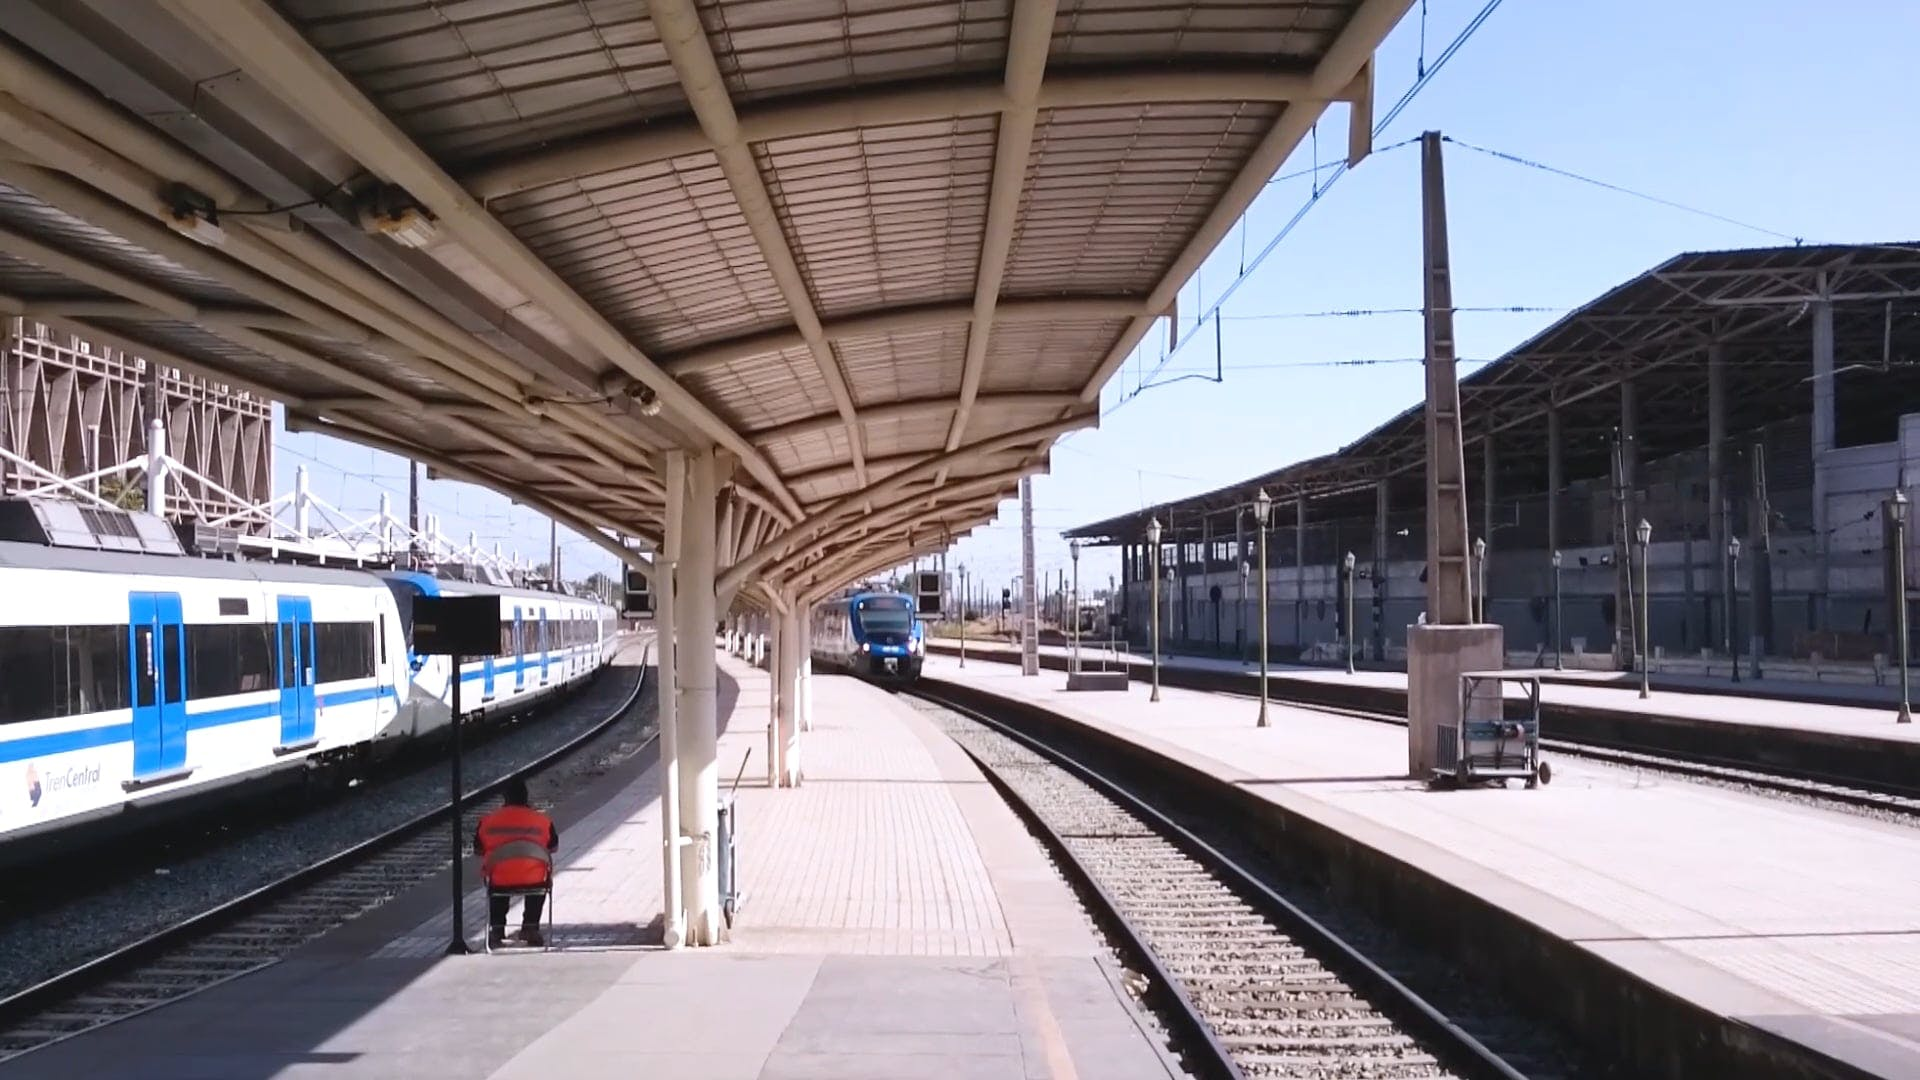 Train Arriving At The Station